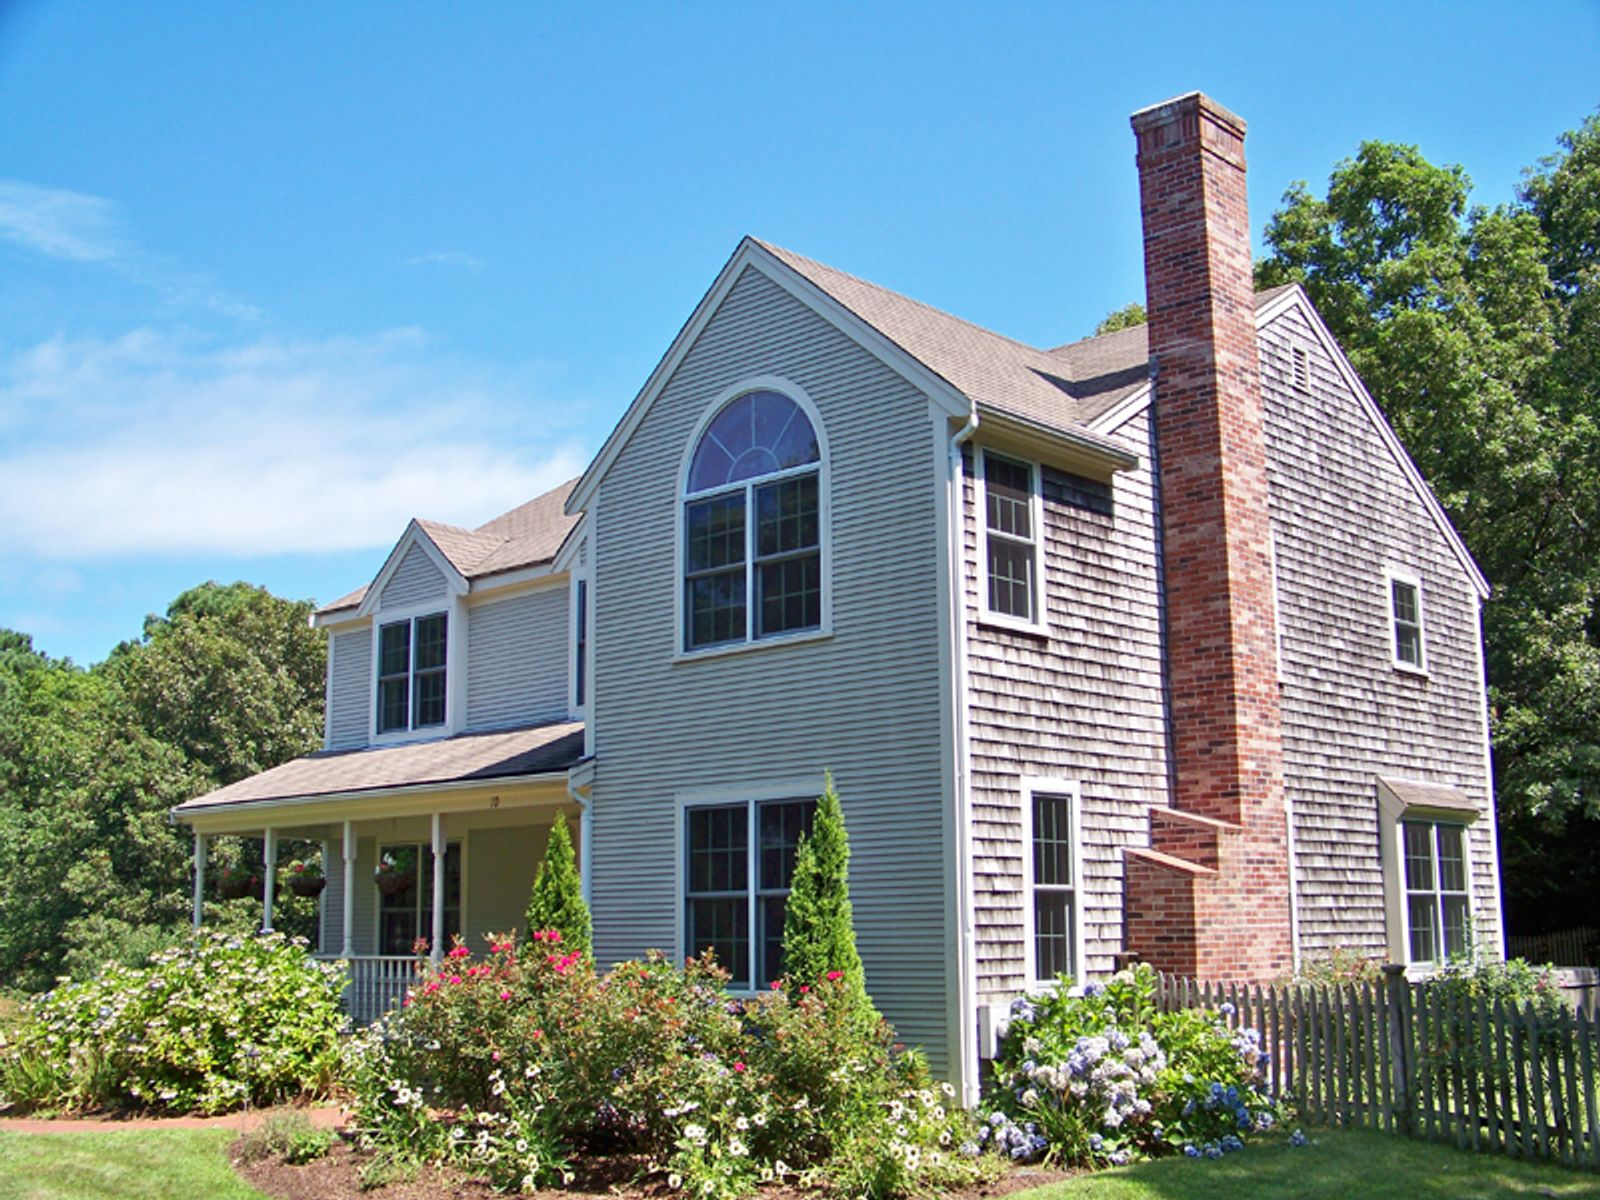 Colonial with Association Beach, East Sandwich MA Single Family Home - Cape Cod Real Estate